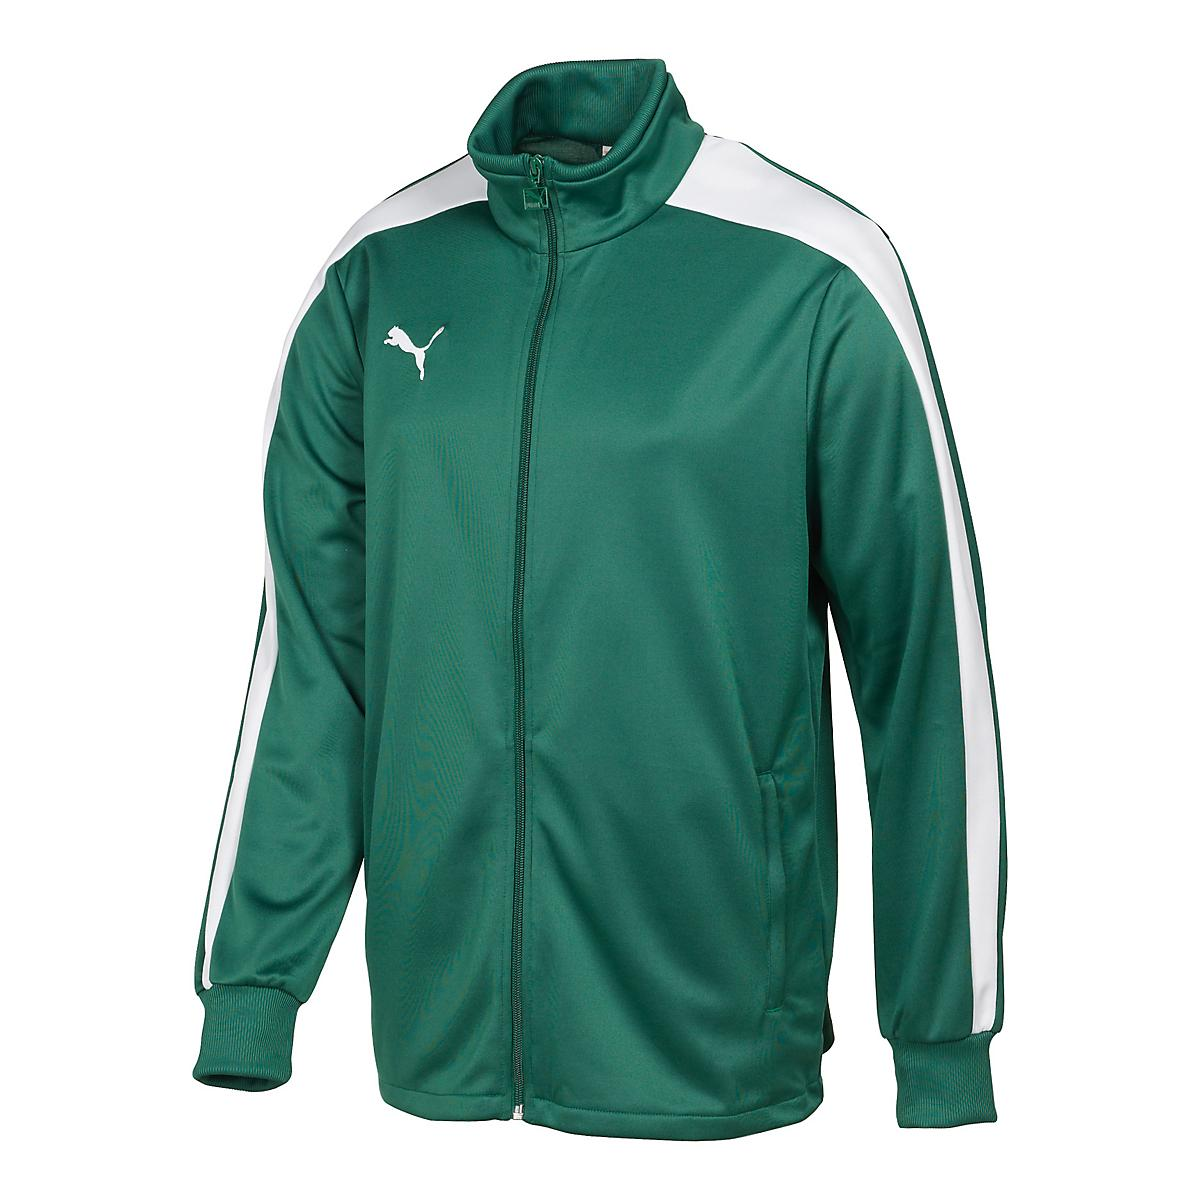 Mens Puma Icon Walk Out Running Jackets at Road Runner Sports